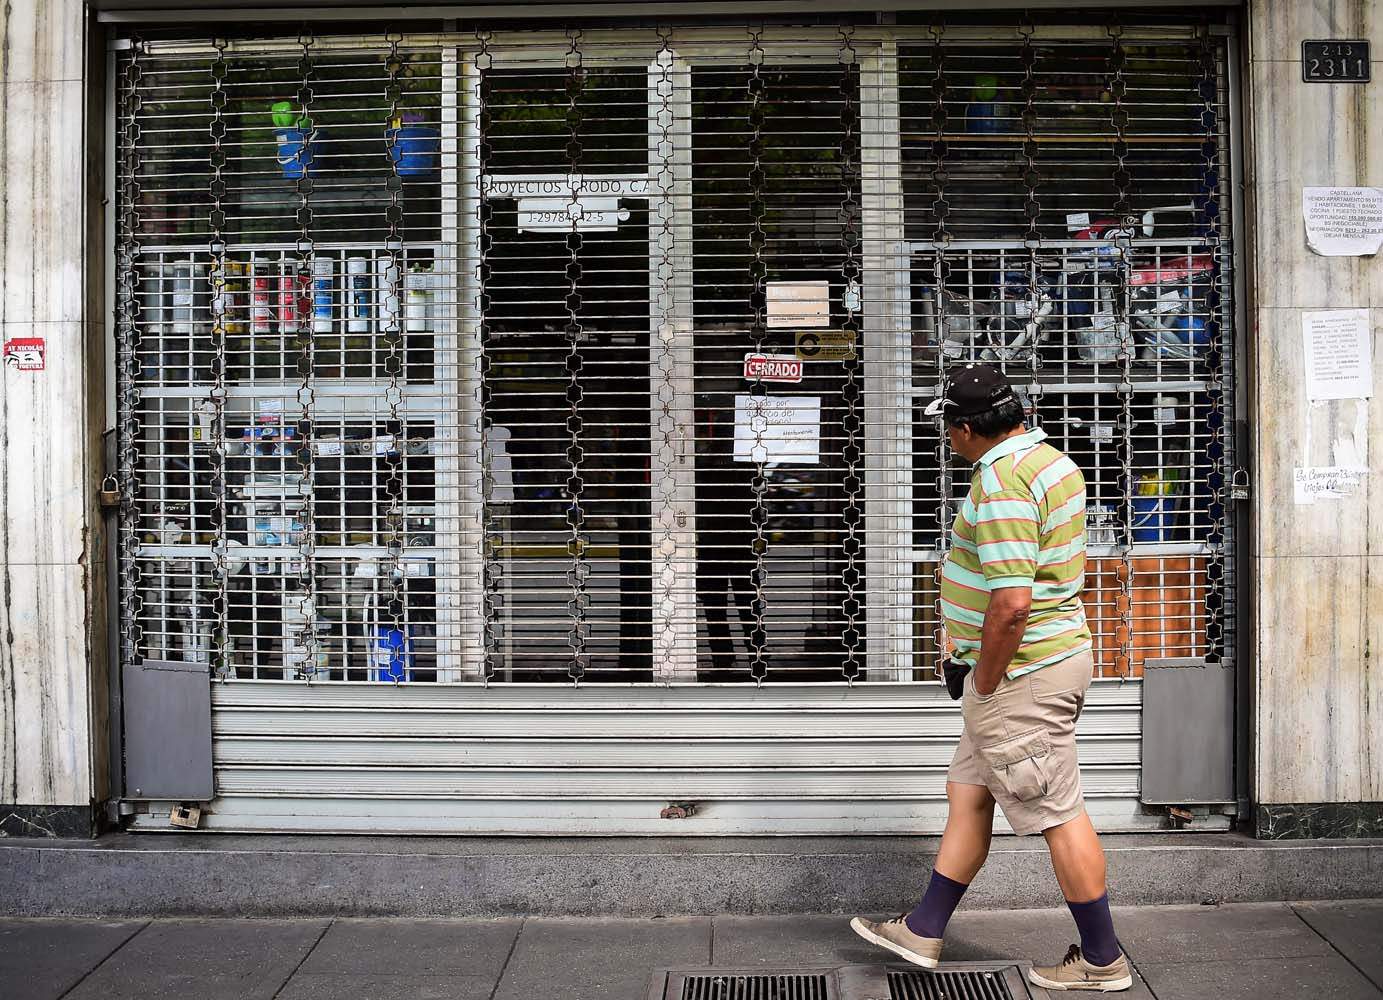 A man passes by a closed store in Caracas, on October 28, 2016. Venezuela's opposition sought to pressure President Nicolas Maduro on Friday with a strike, which he threatened to break with army takeovers of paralyzed firms. The strike risks exacerbating the shortages of food and goods gripping the country, but it seemed to be only partially observed on Friday morning. / AFP PHOTO / RONALDO SCHEMIDT